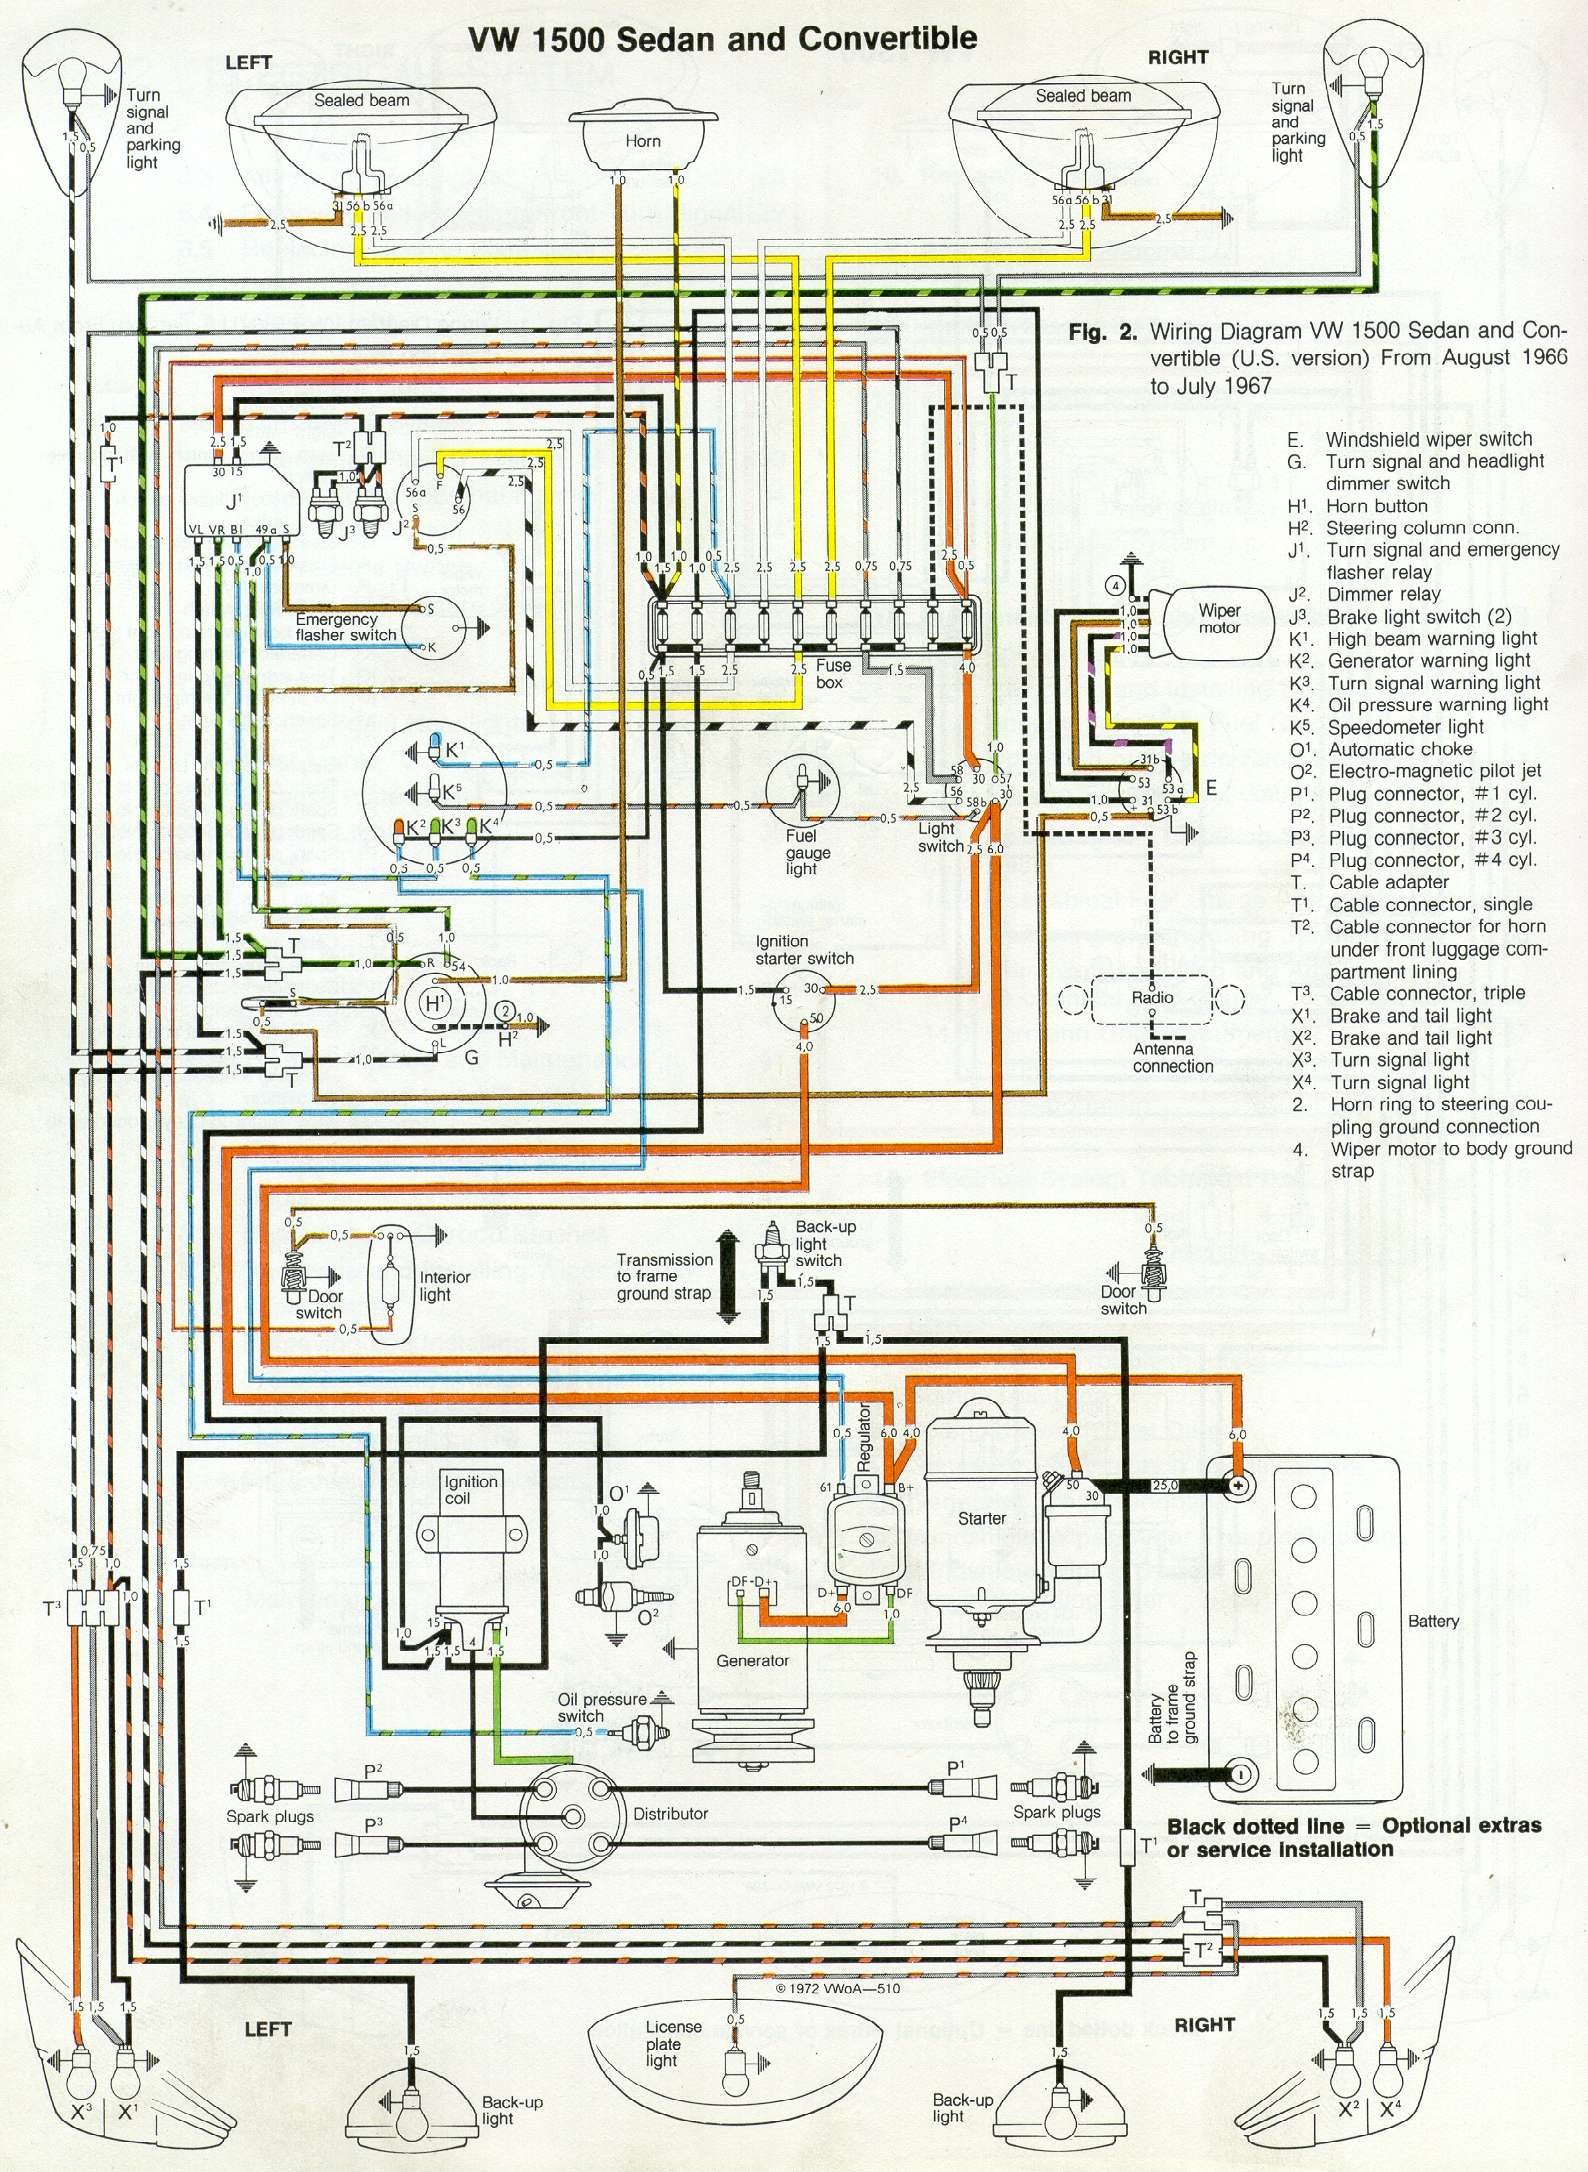 VW bug_1967 other diagrams 1973 vw beetle wiring diagram at readyjetset.co